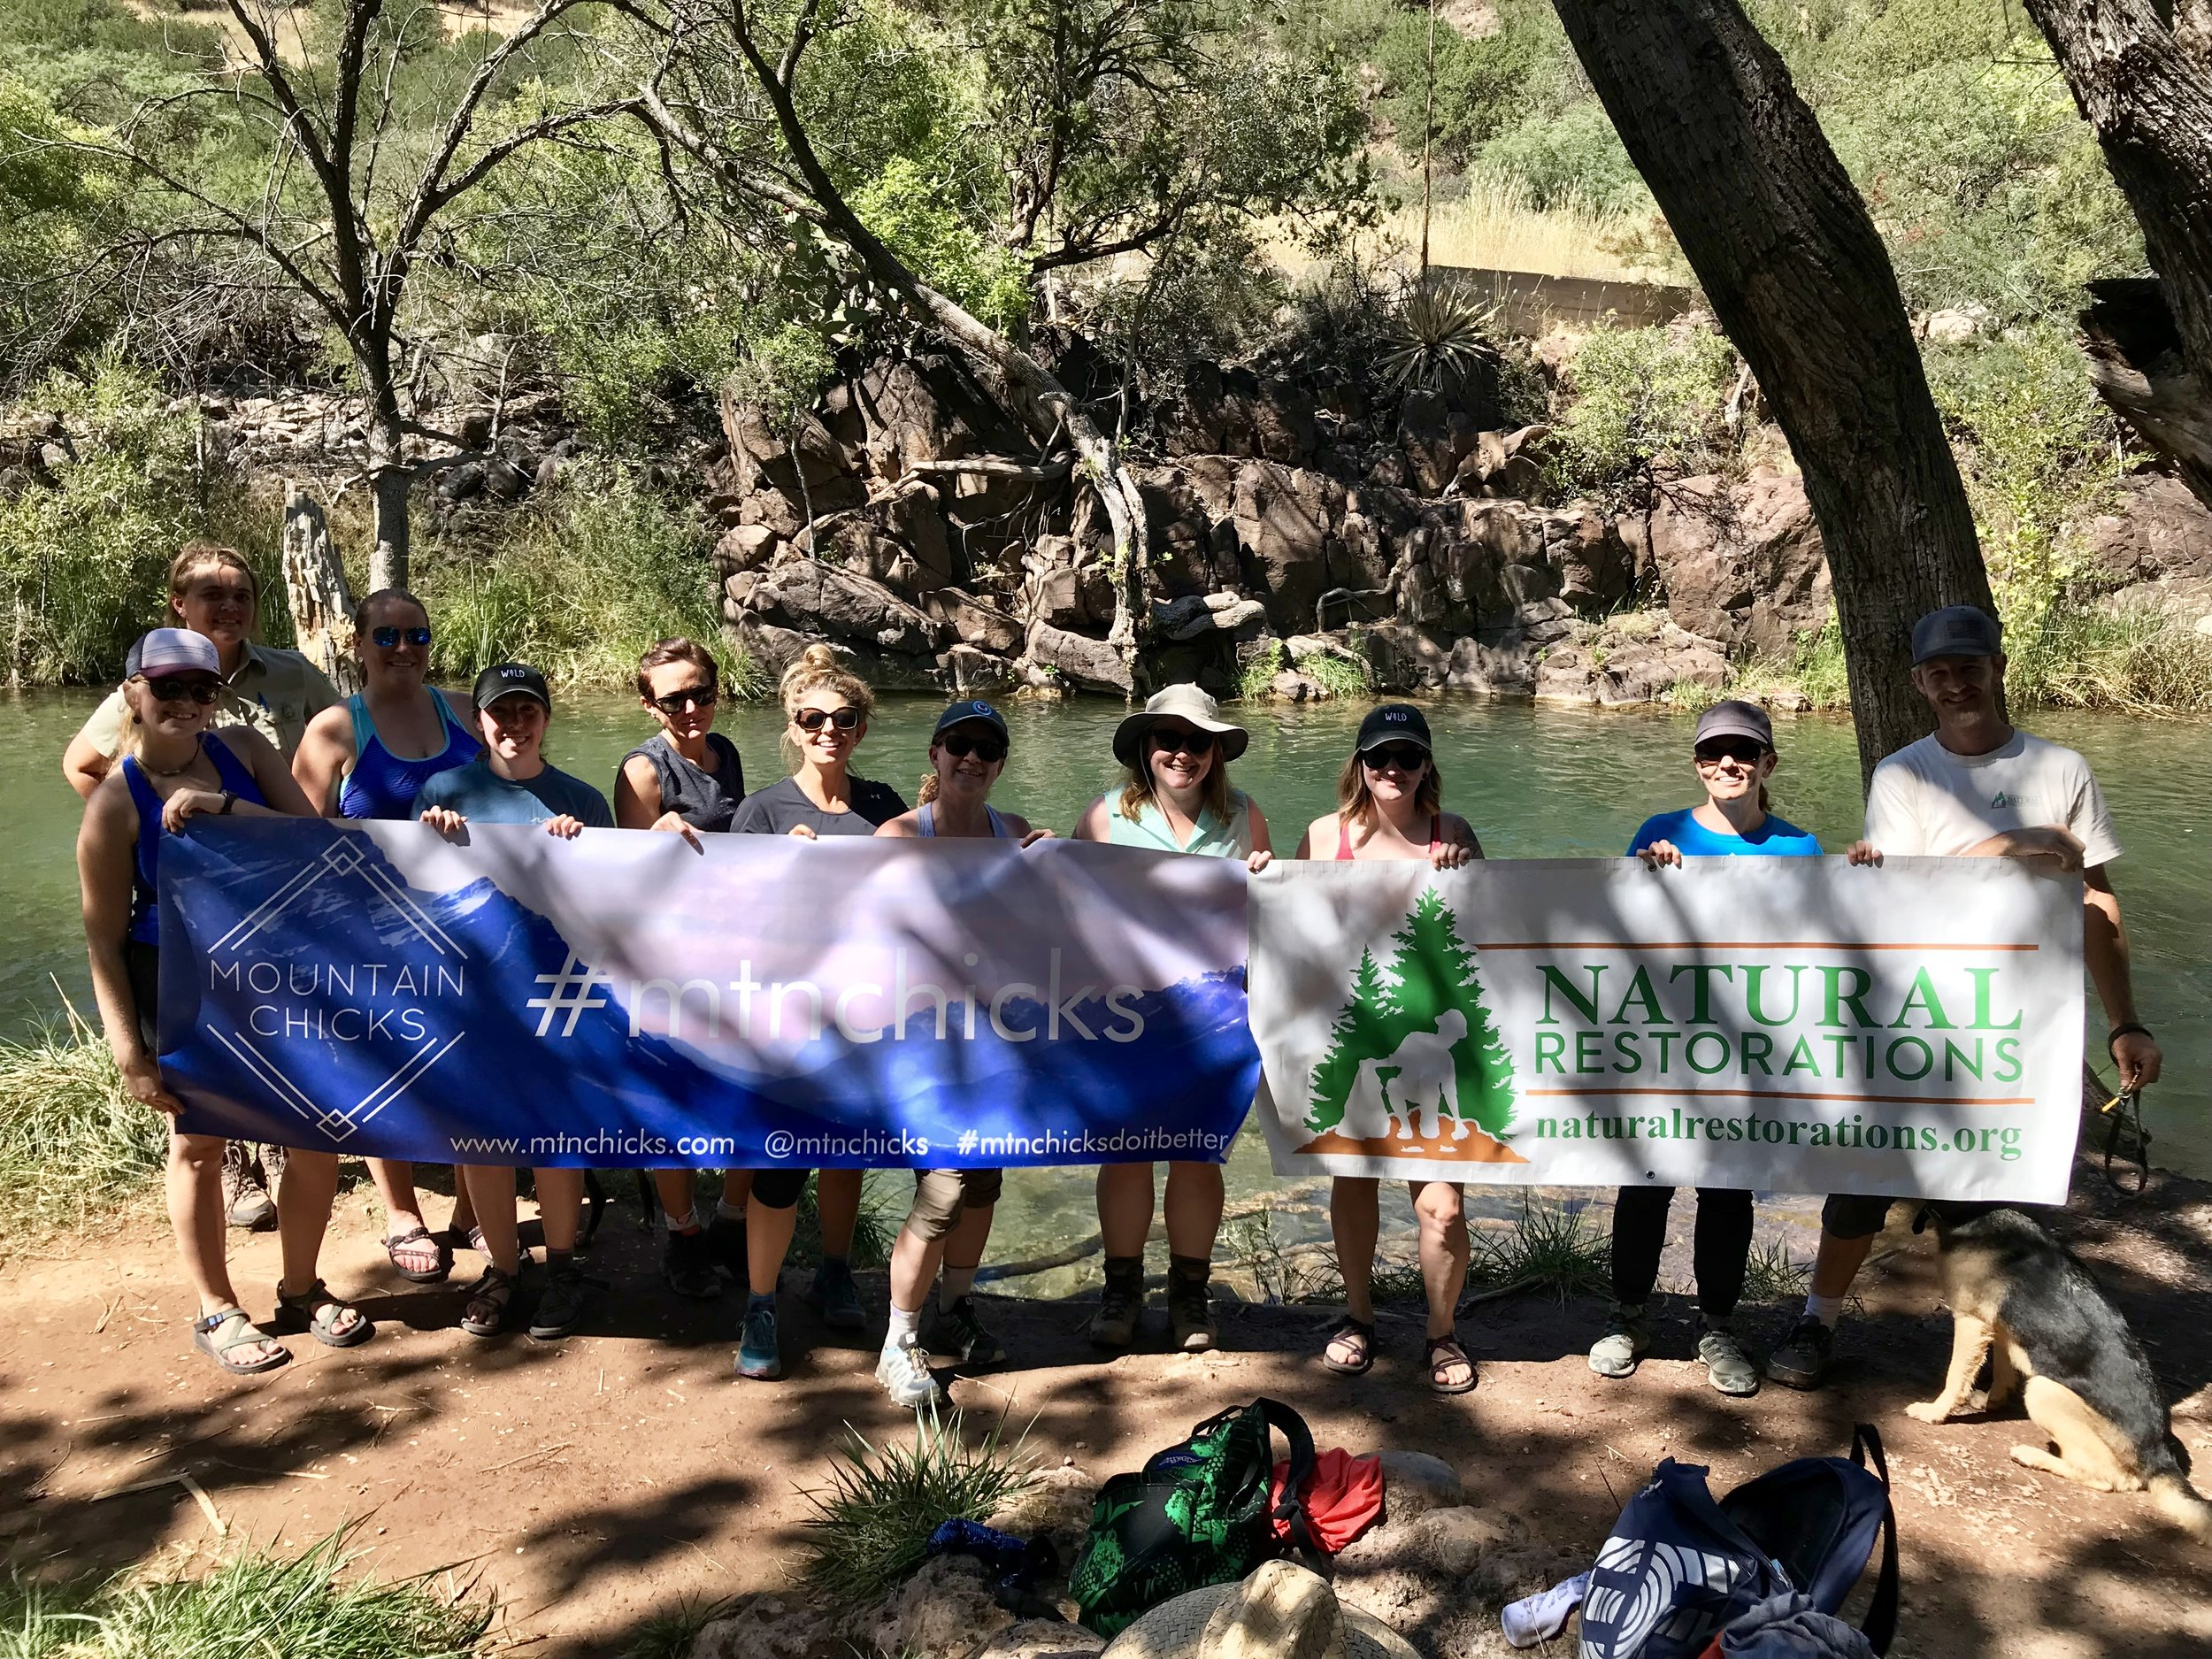 09/29/18 - National Public Lands Day Cleanup at Fossil Creek with Mountain Chicks.Click HERE to view the project.